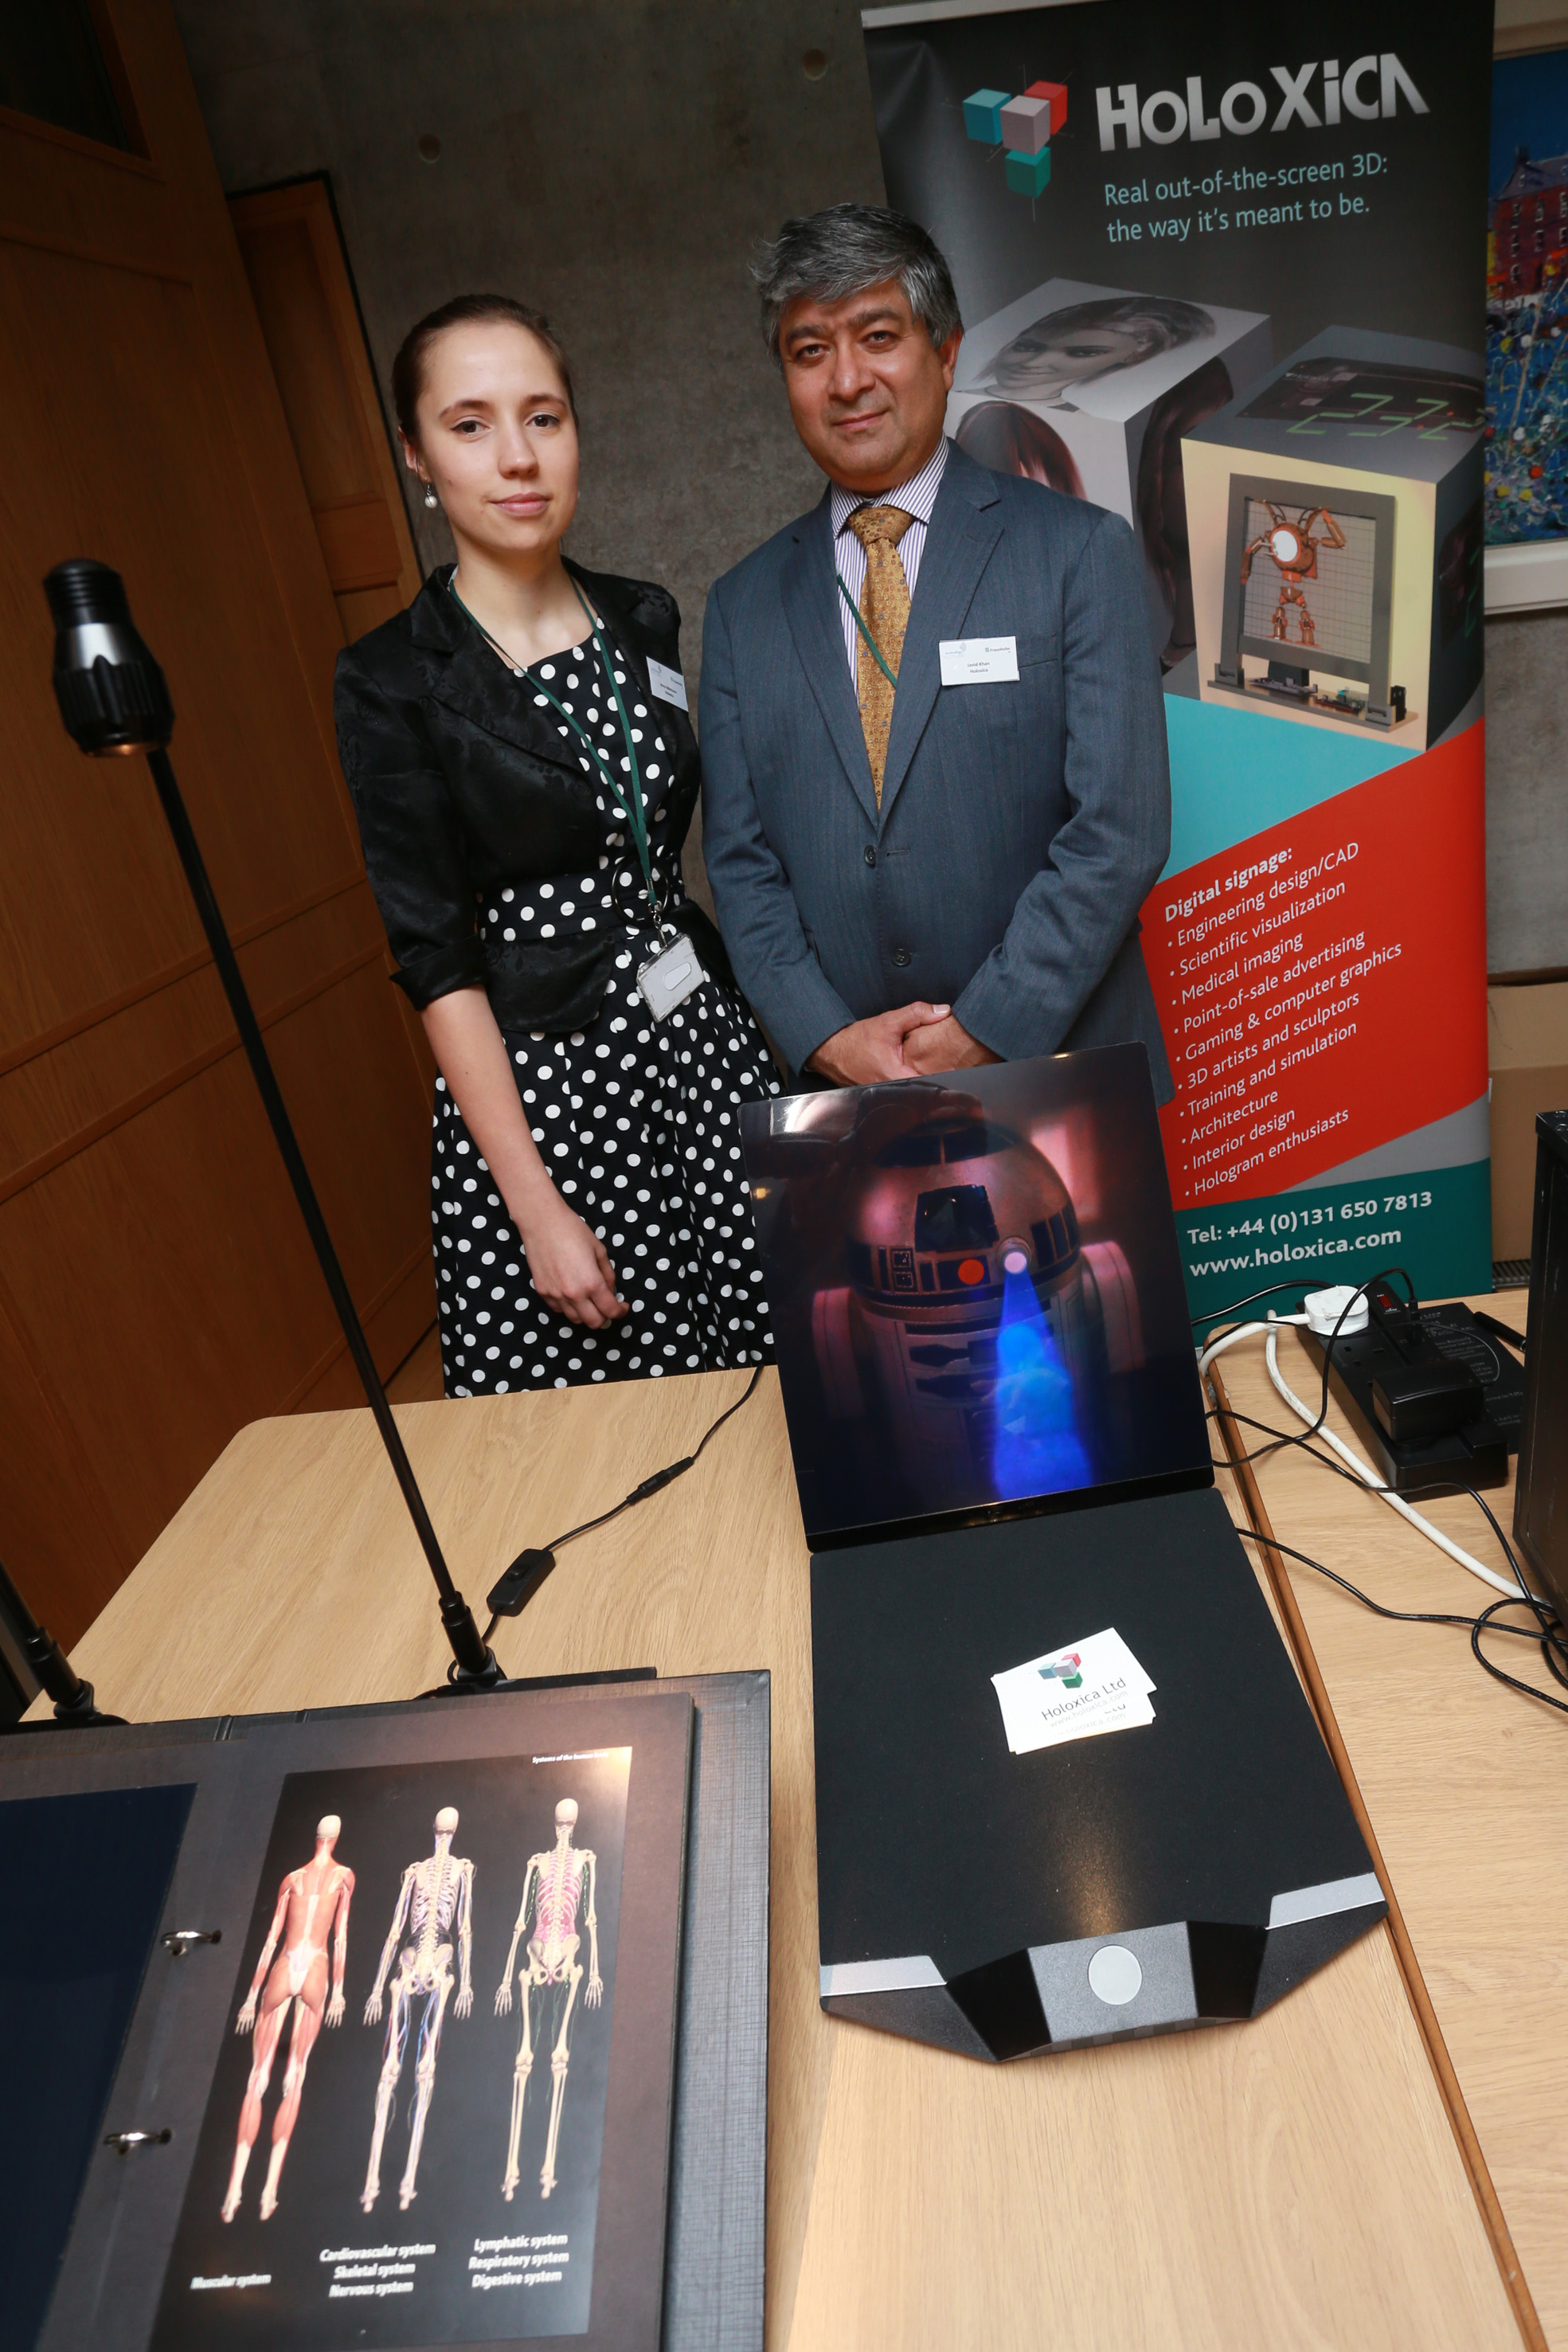 Anna and Javid from Holoxica, showing their digital holograms.Photo courtesy of Technology Scotland.